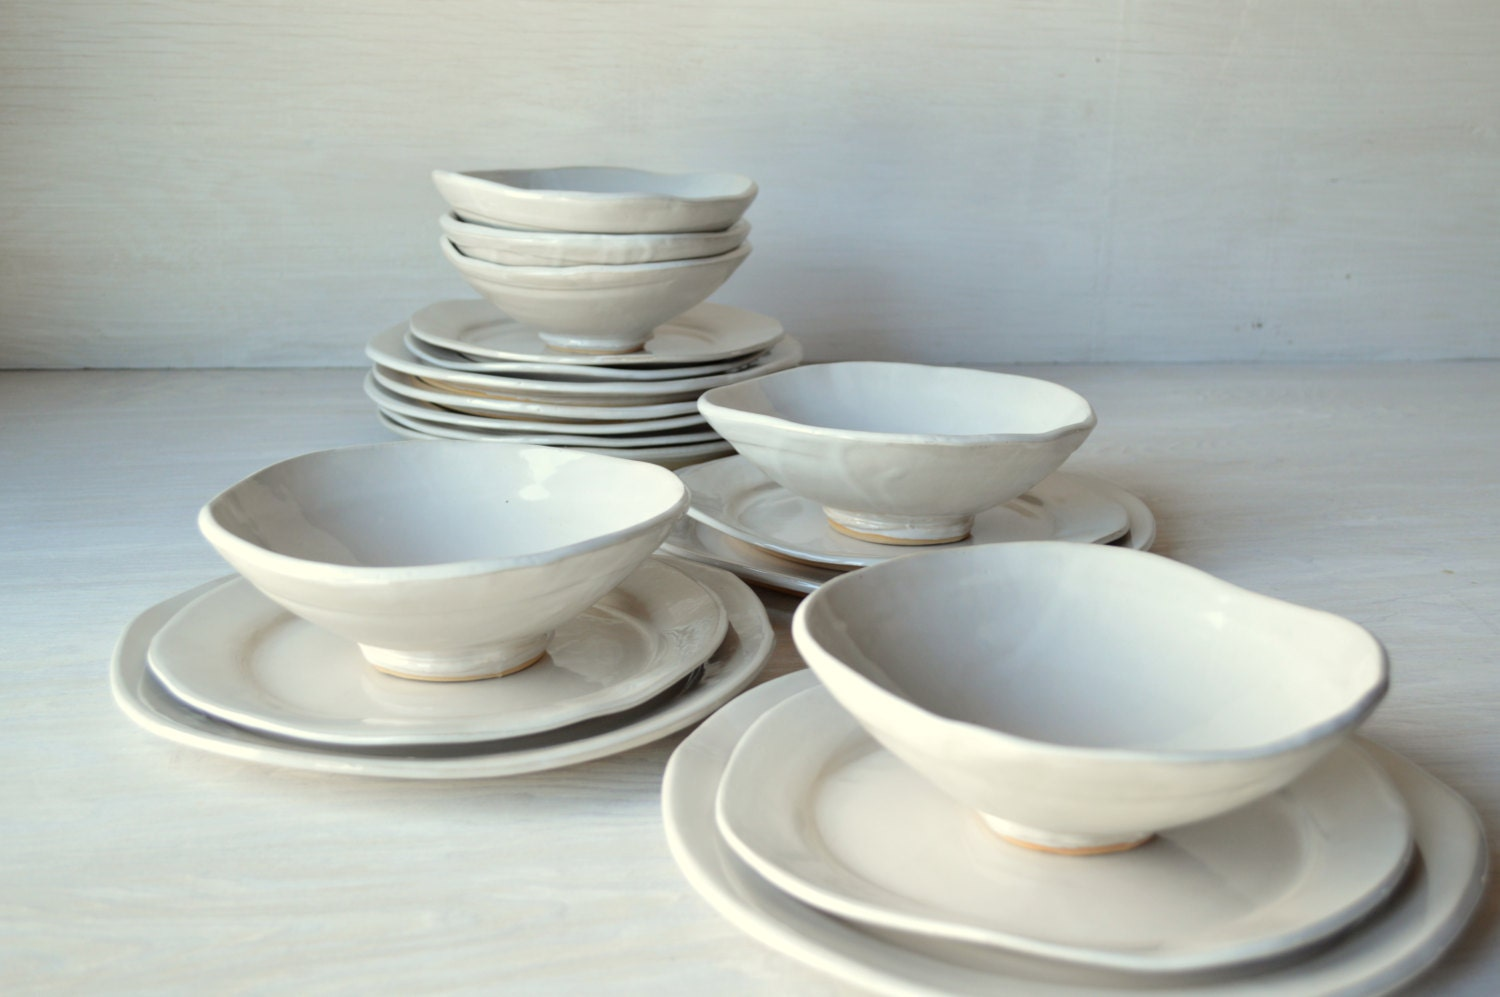 White Ceramic Dinnerware Set 12 Piece Setting By Jillzeidler